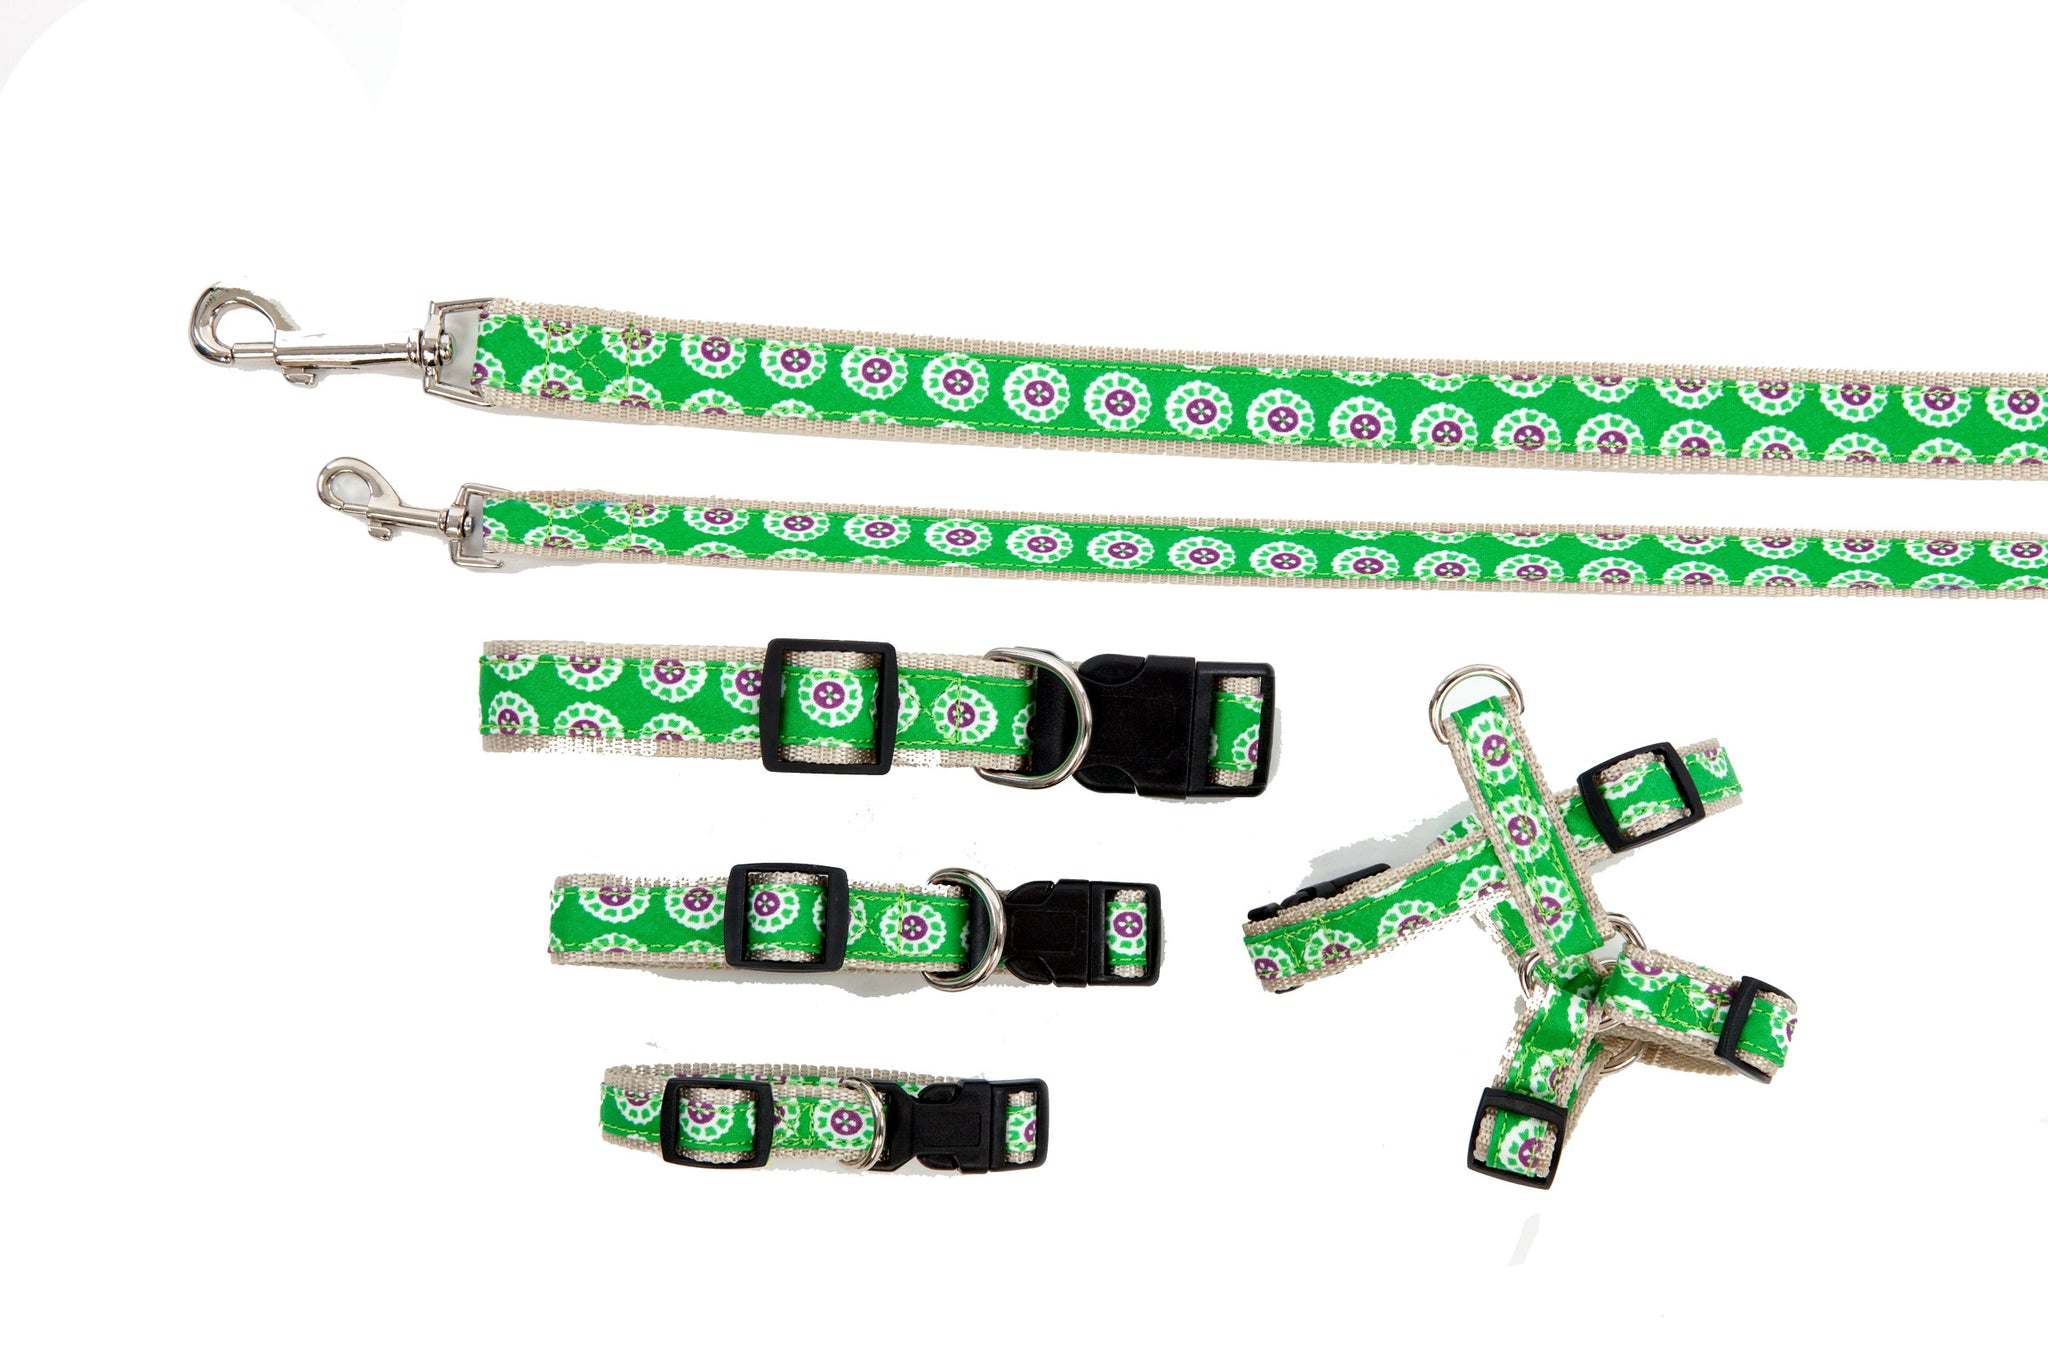 Signature Follard Collection - Collars, Harnesses & Leads - Follard Green